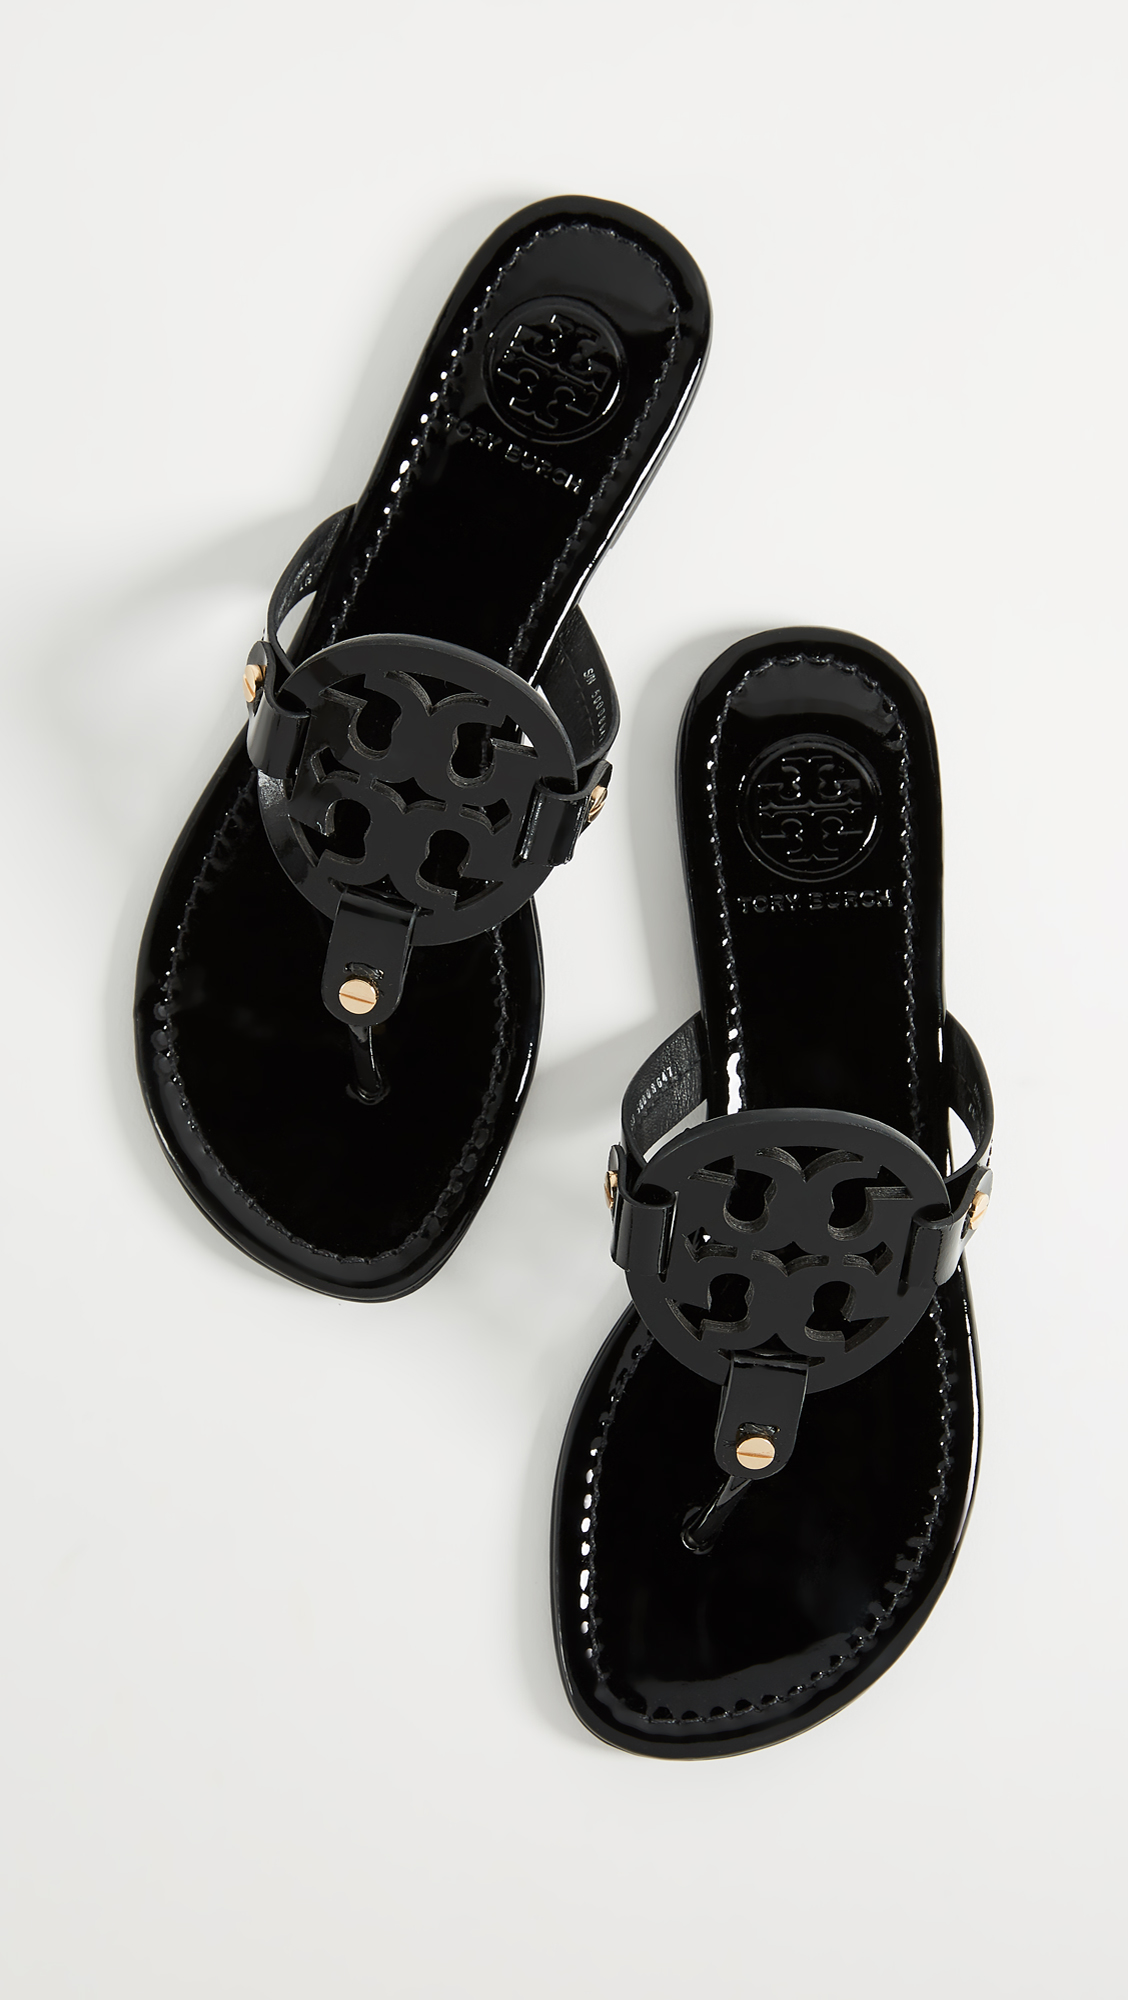 ce38638ee Tory Burch Miller Thong Sandals